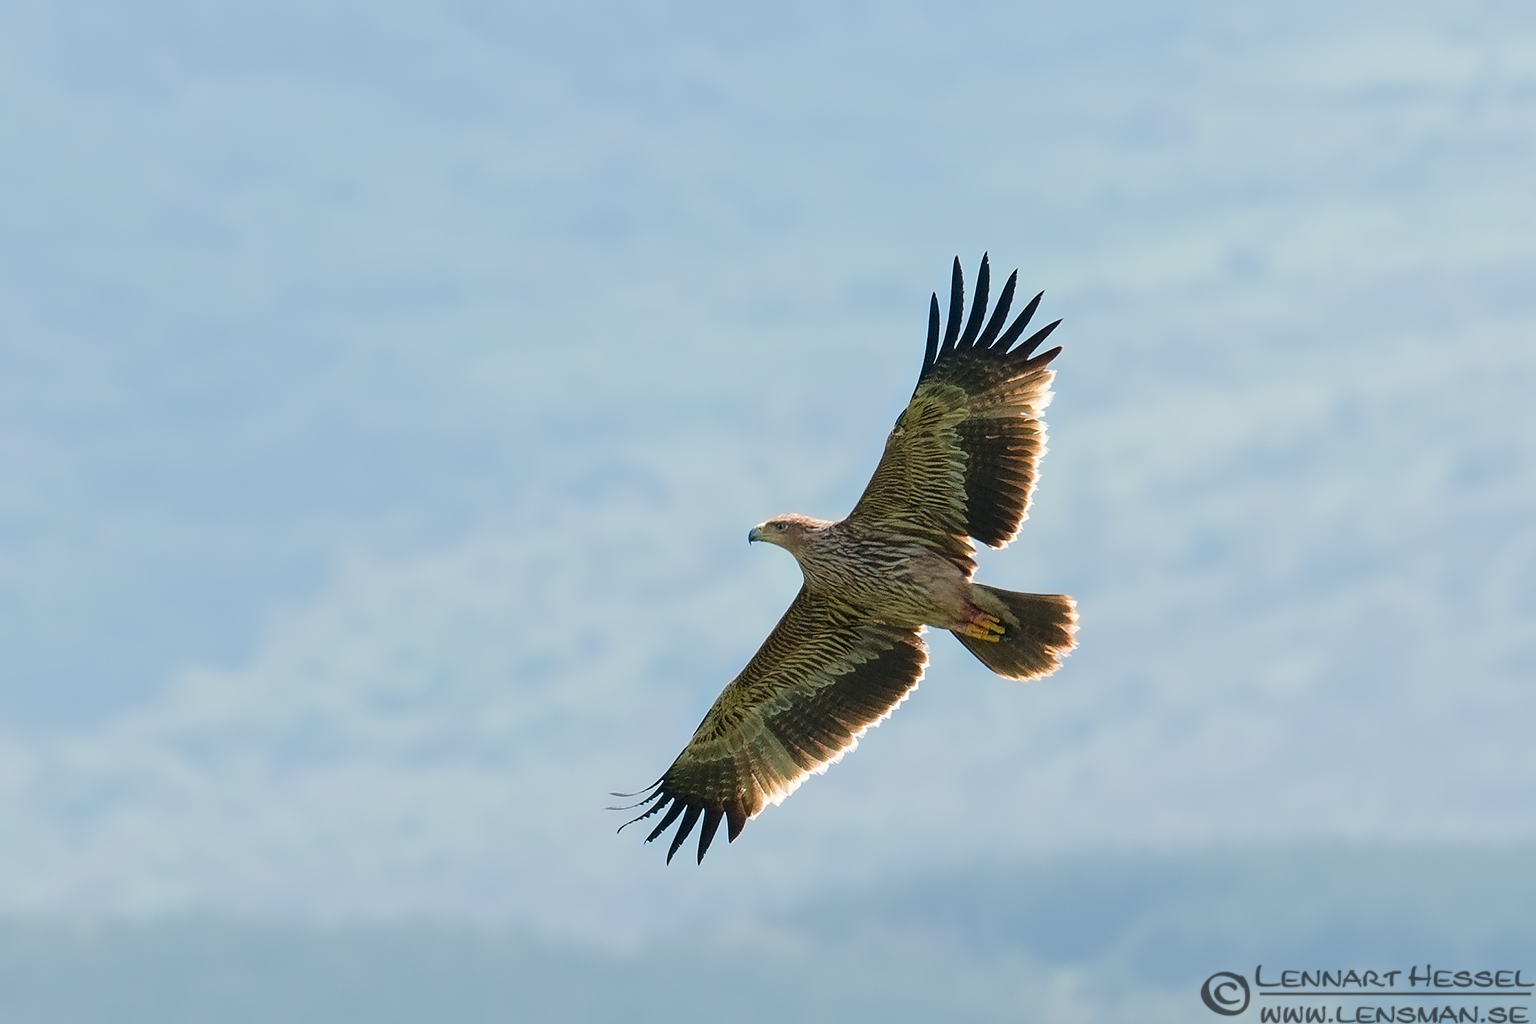 Eastern Imperial Eagle in Bulgaria